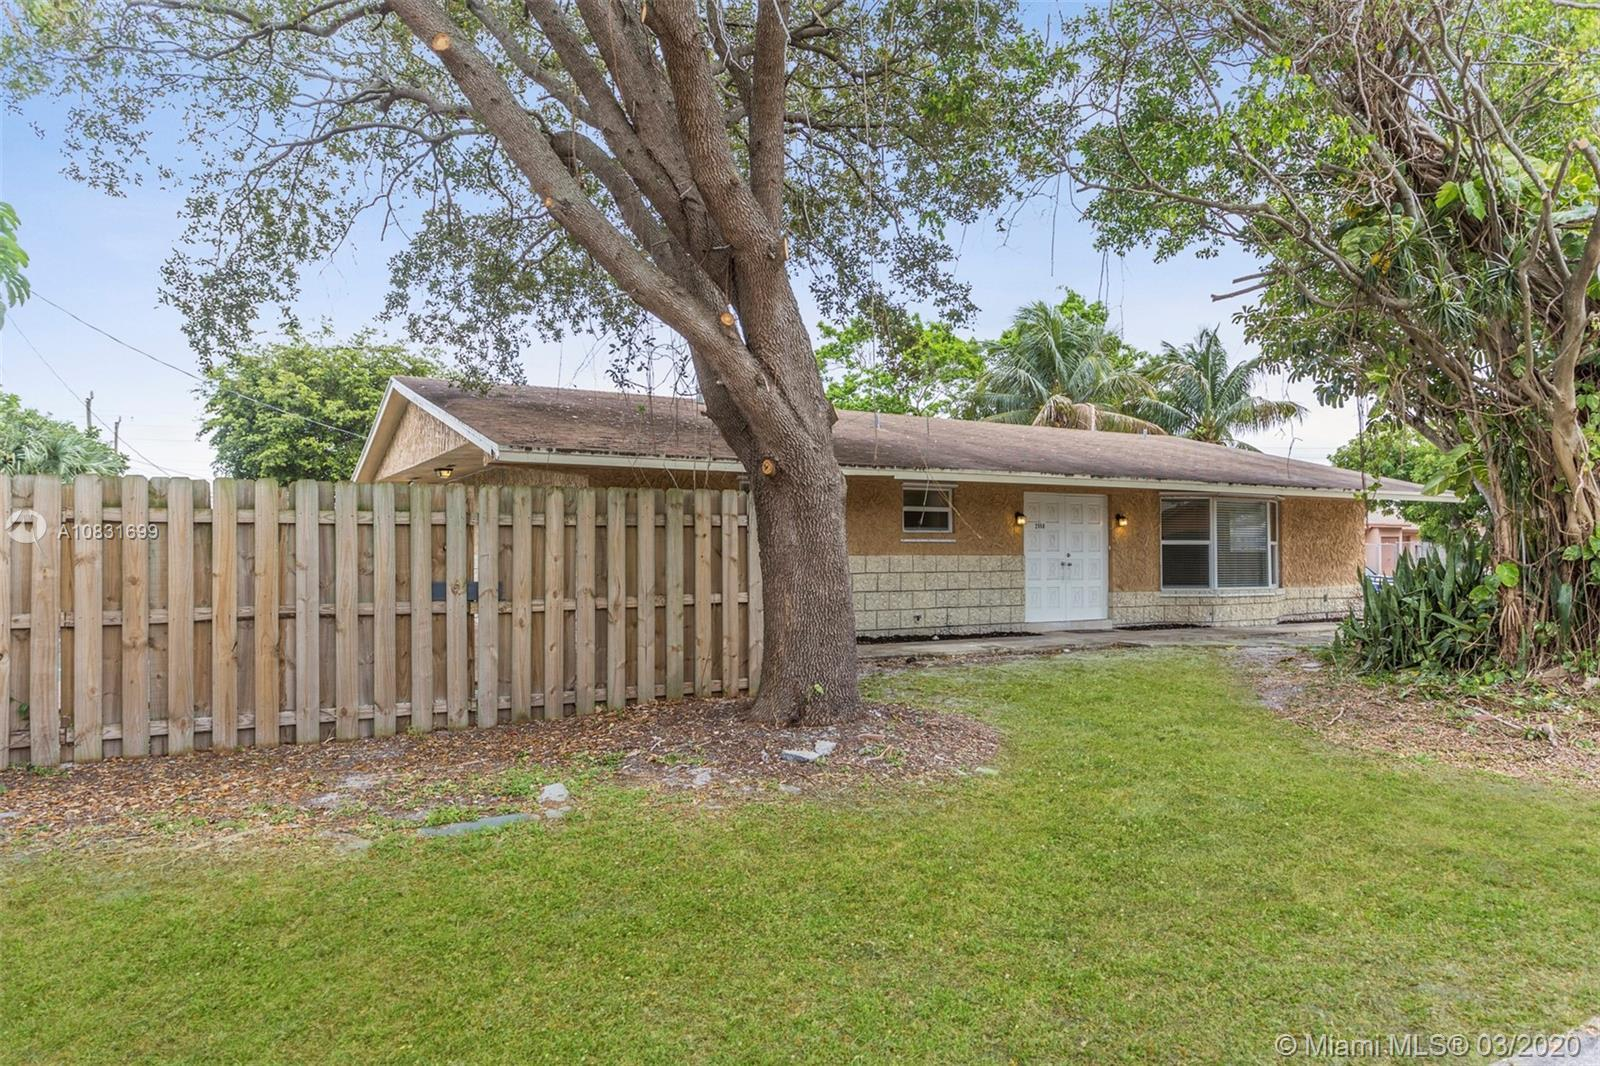 This home is a great opportunity to move into the Pompano Beach area! This is an as-is home. Check i